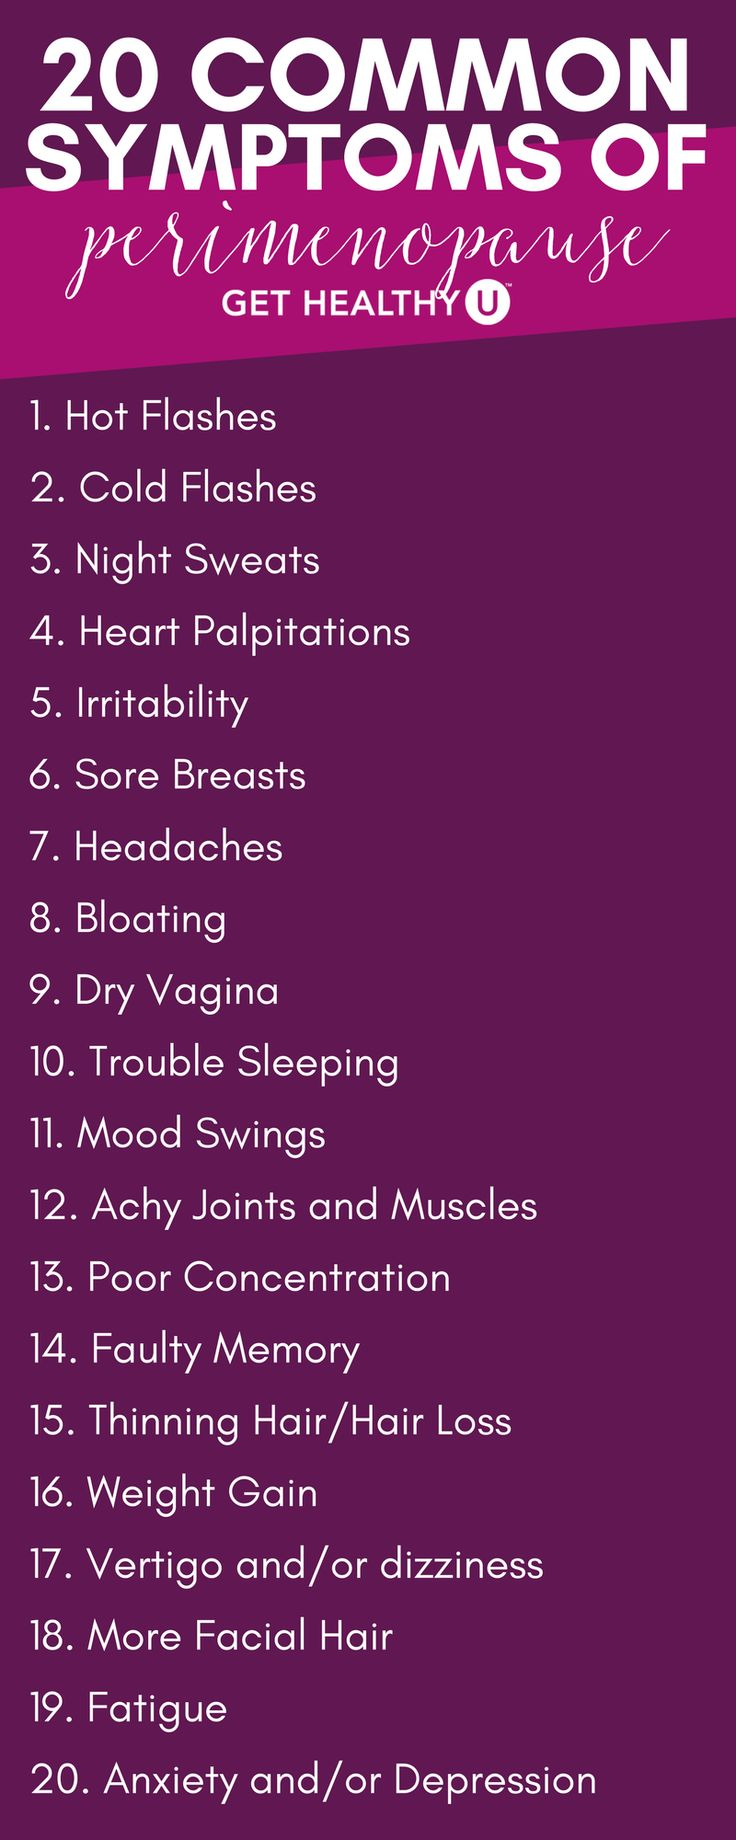 If you're in your 30s or 40s and have recently noticed mood swings, night sweats, and other strange symptoms cropping up, you might be a little confused. It's too early for menopause, isn't it? Could these symptoms be indicative of something else? Why on earth am I experiencing hot flashes and headaches out of nowhere at this age? If you've had these thoughts, you're not crazy. You might just be experiencing perimenopause.